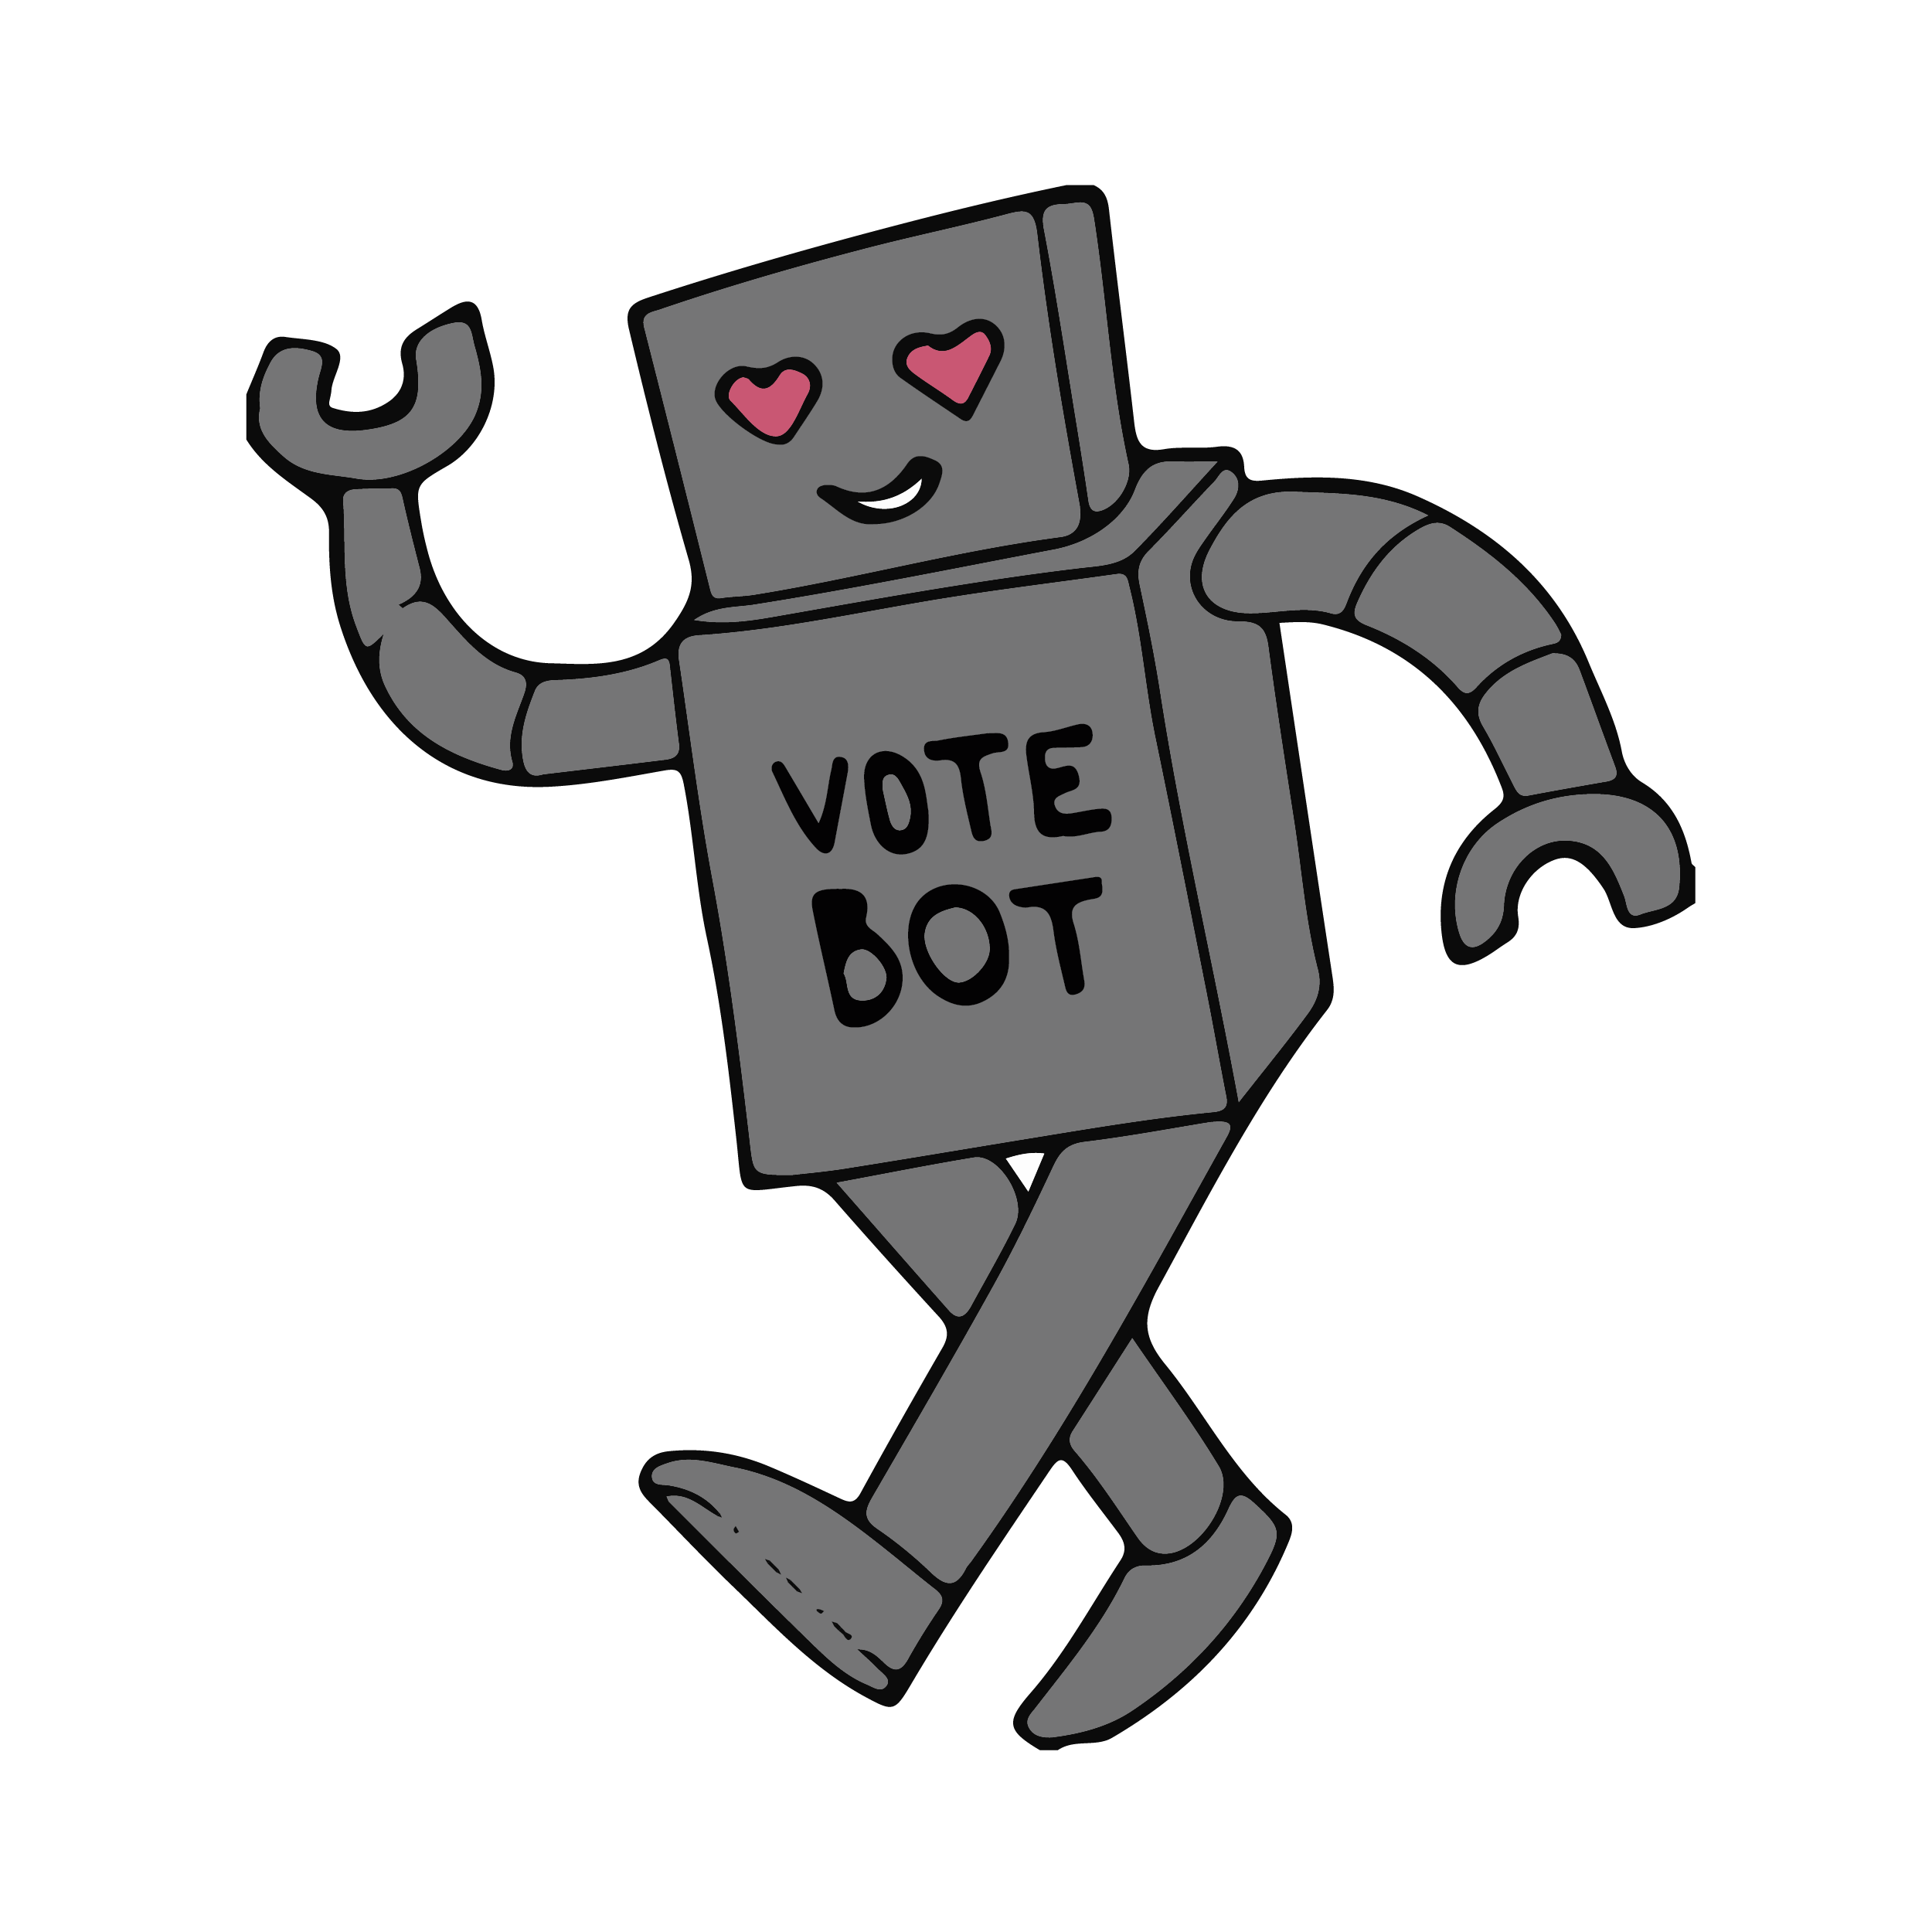 votebotDANCE-01.png